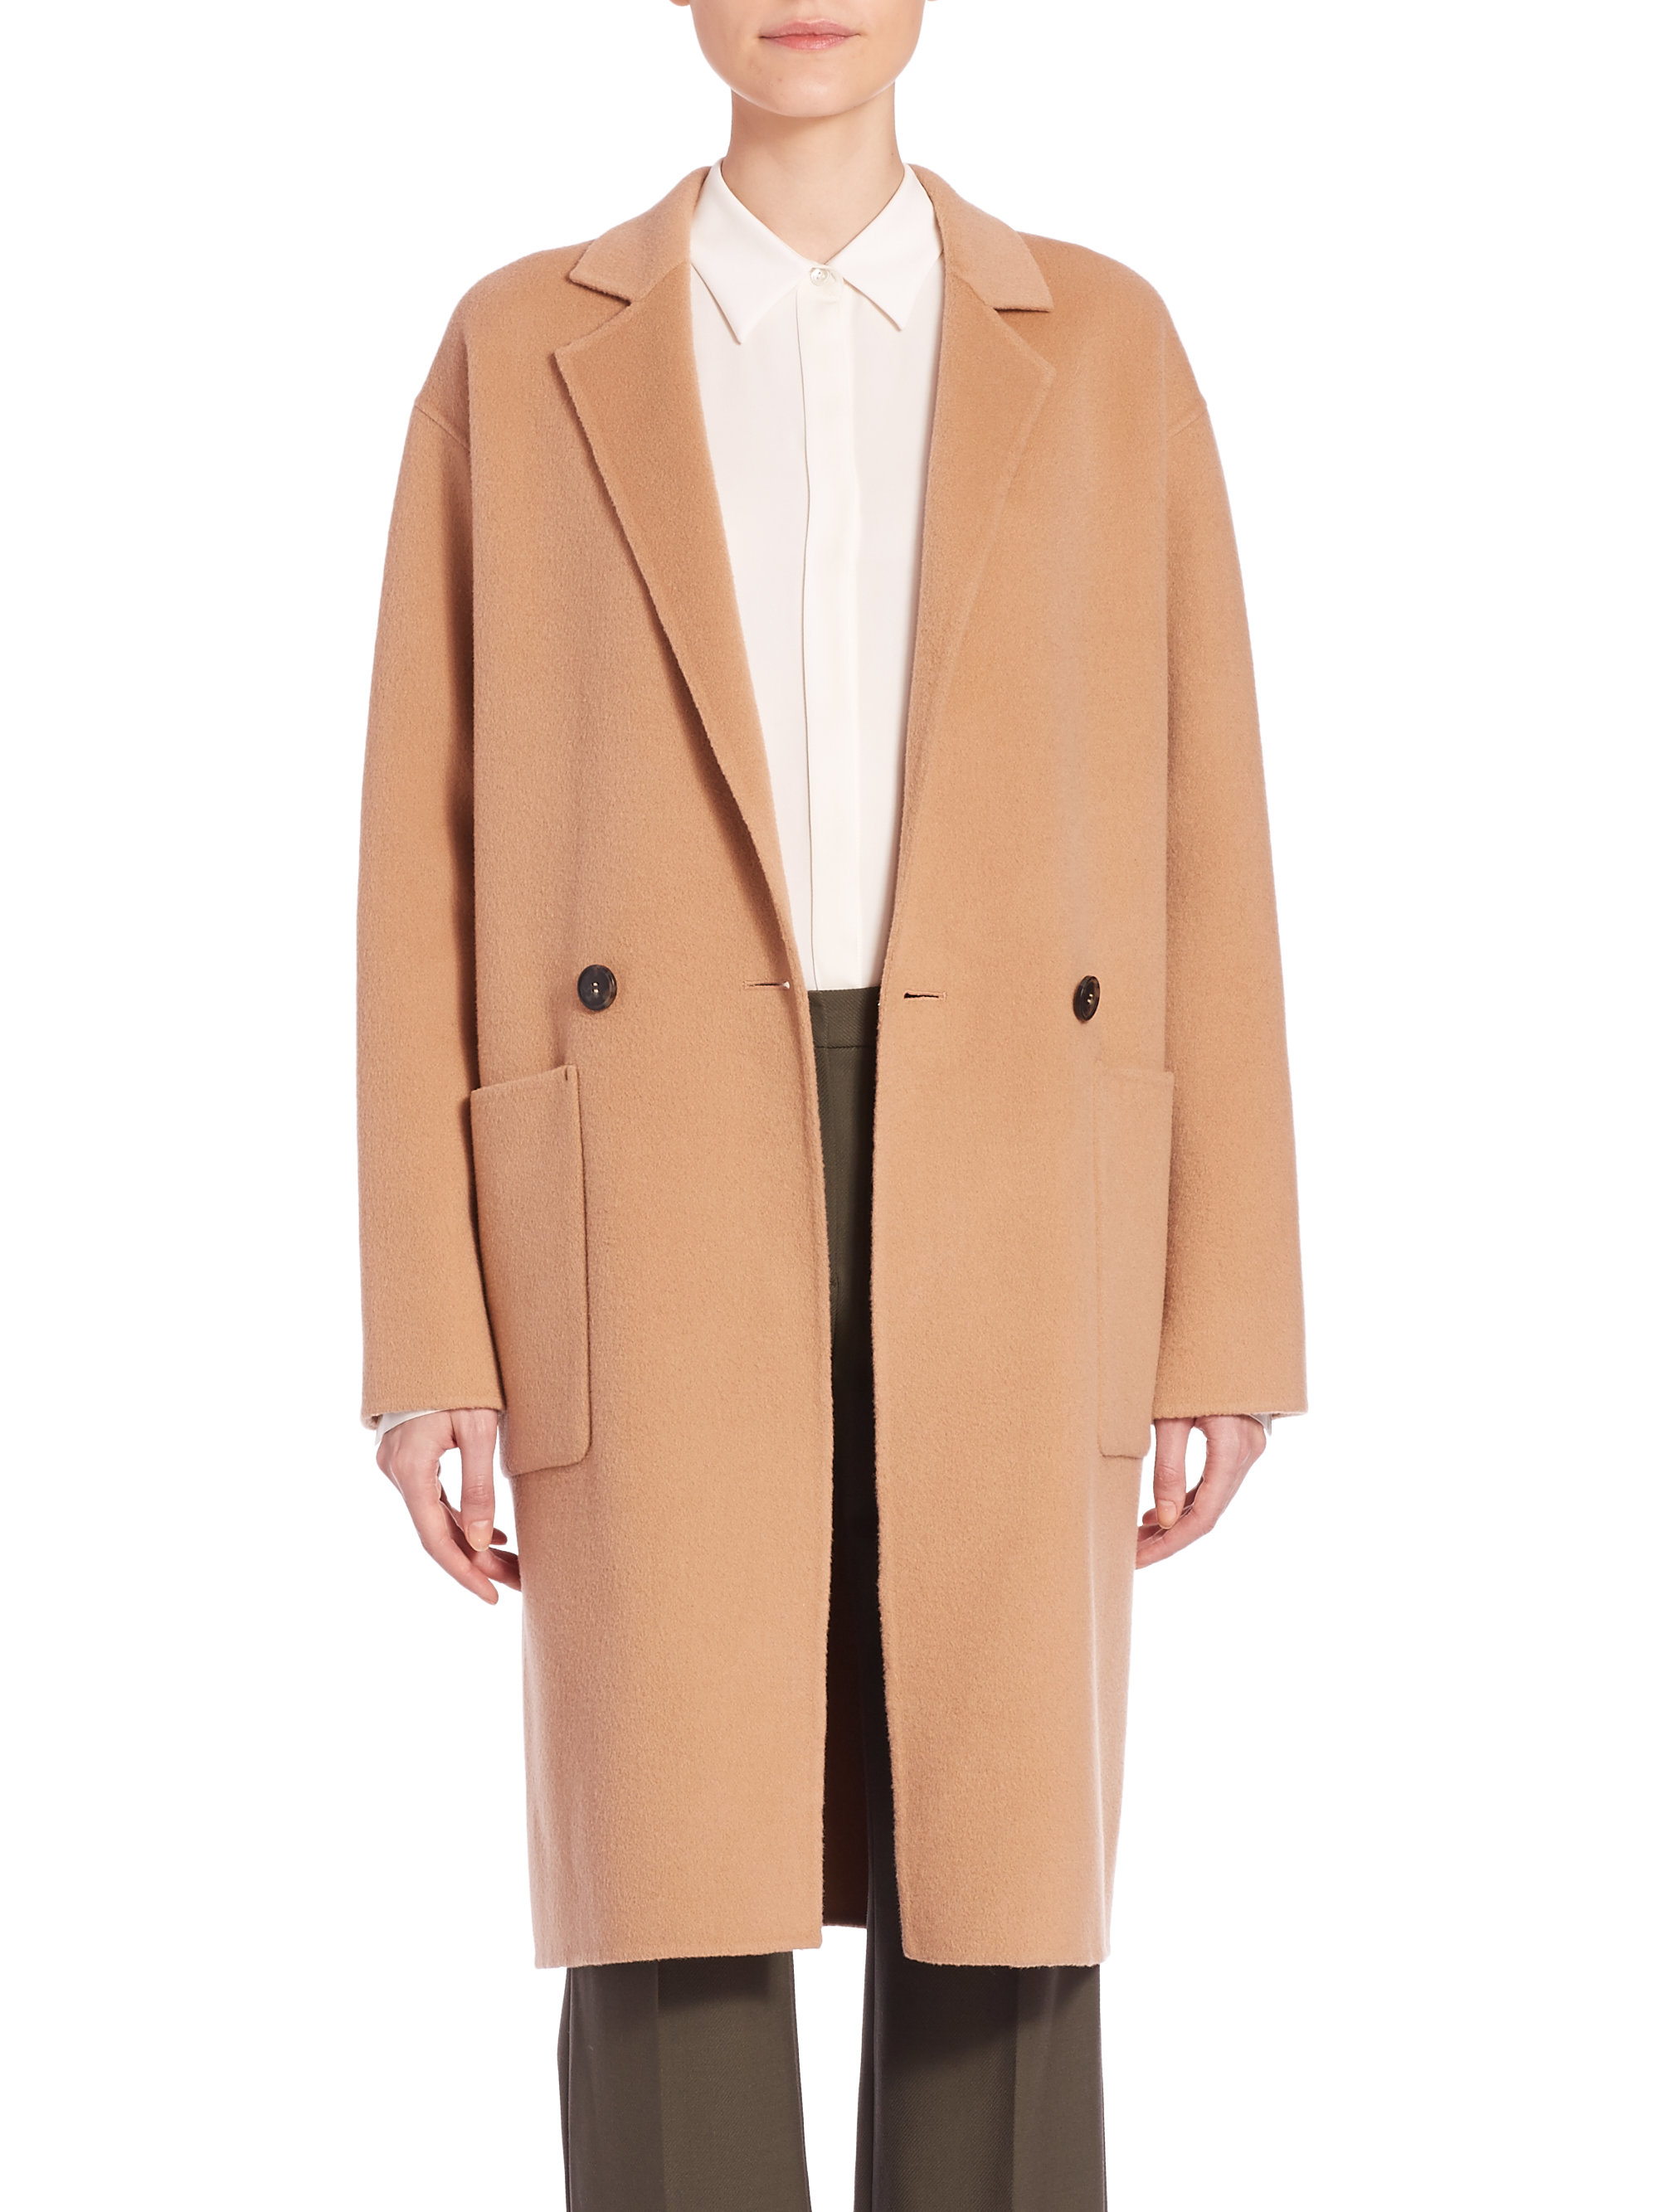 Theory Eletkah Wool & Cashmere Coat in Natural | Lyst